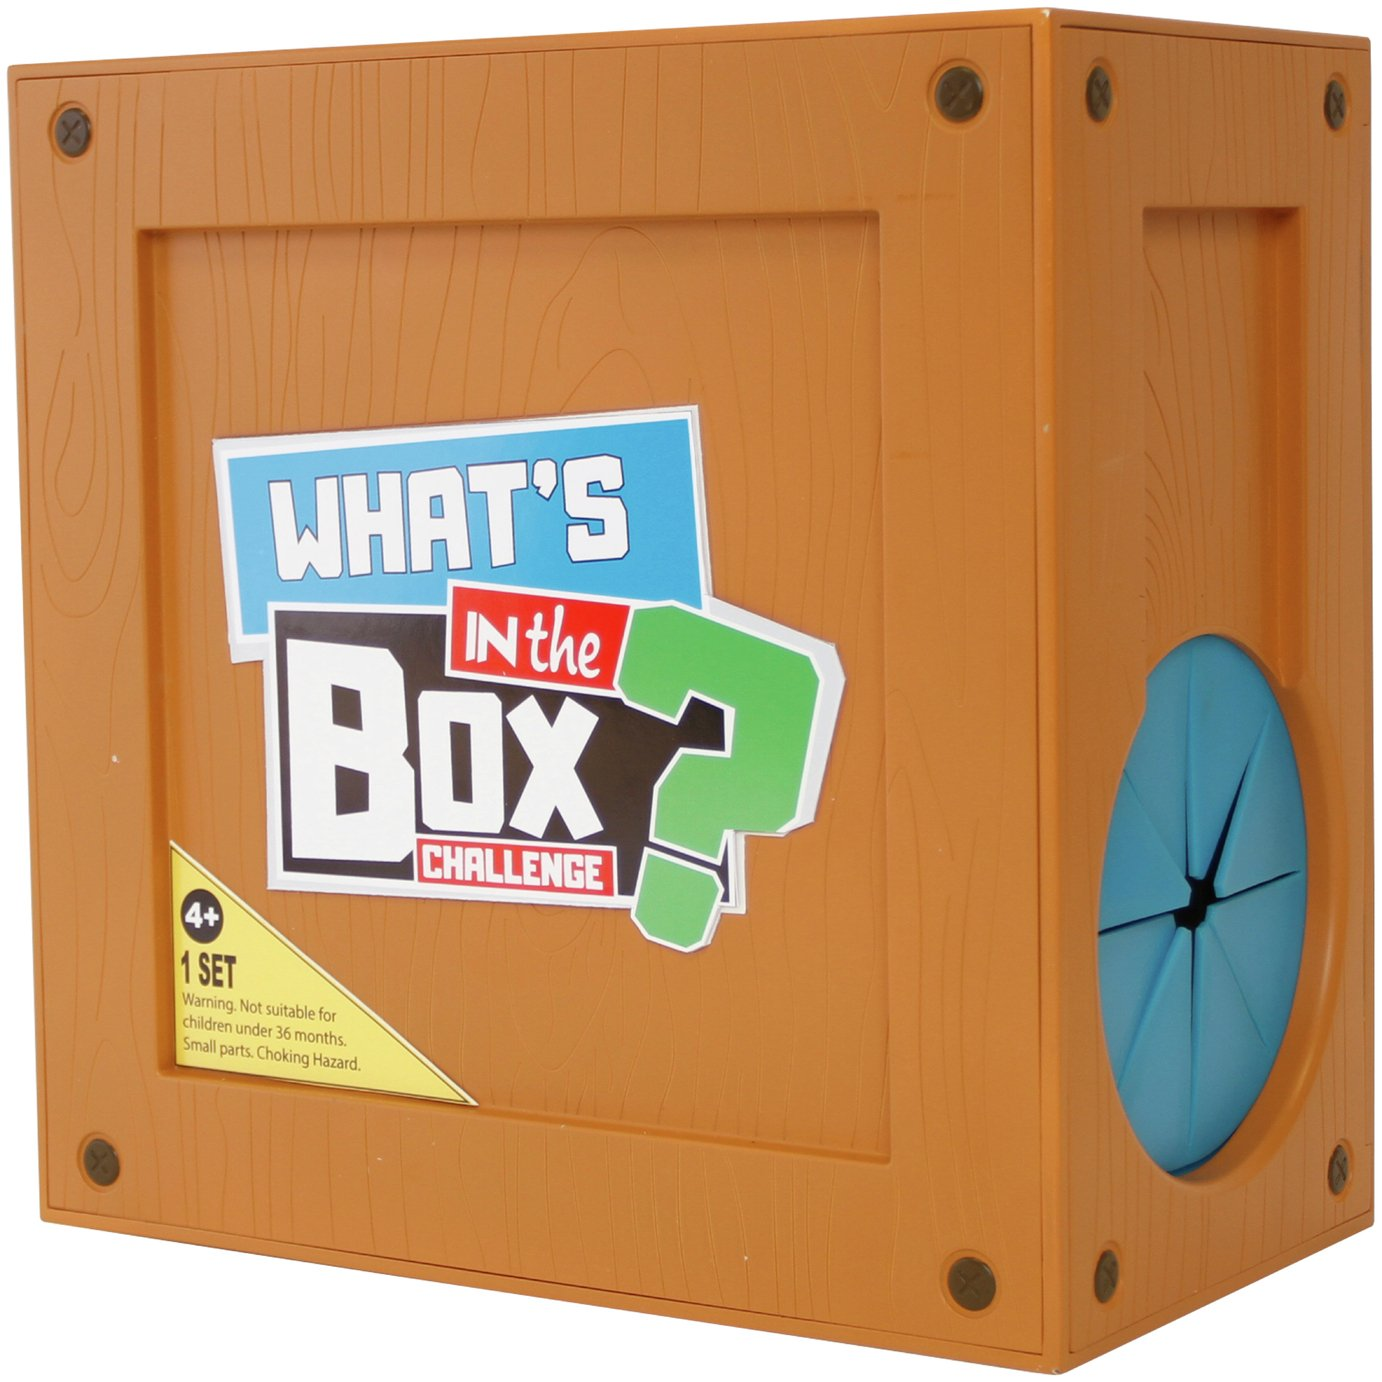 What's In the Box? Game